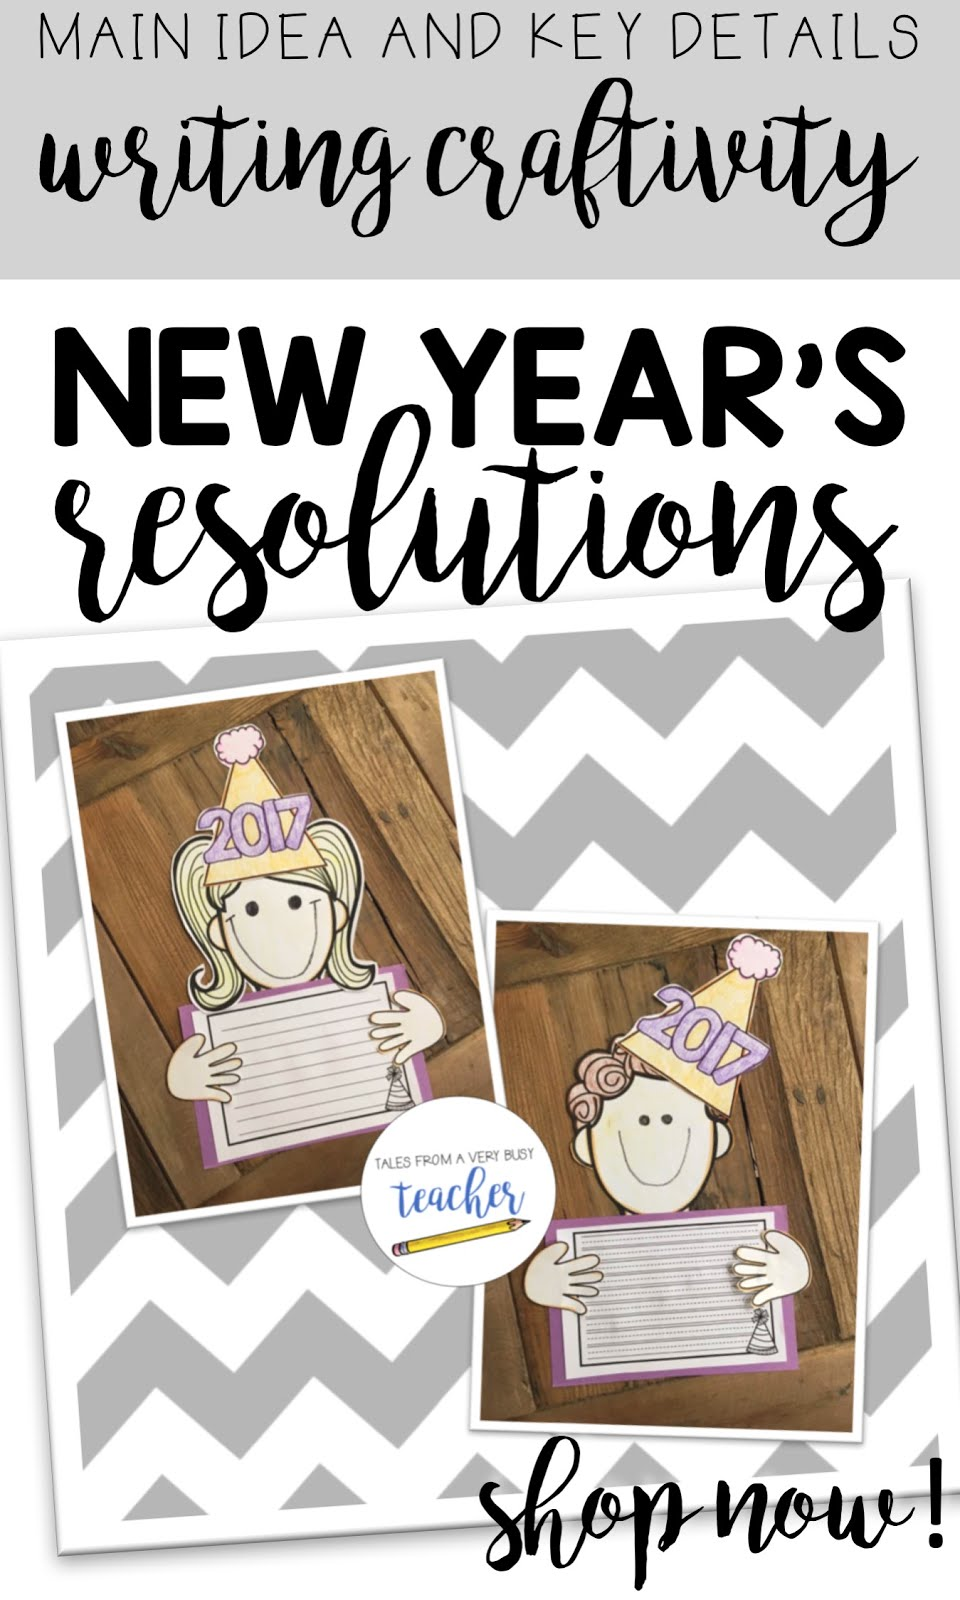 Resolutions for 2017